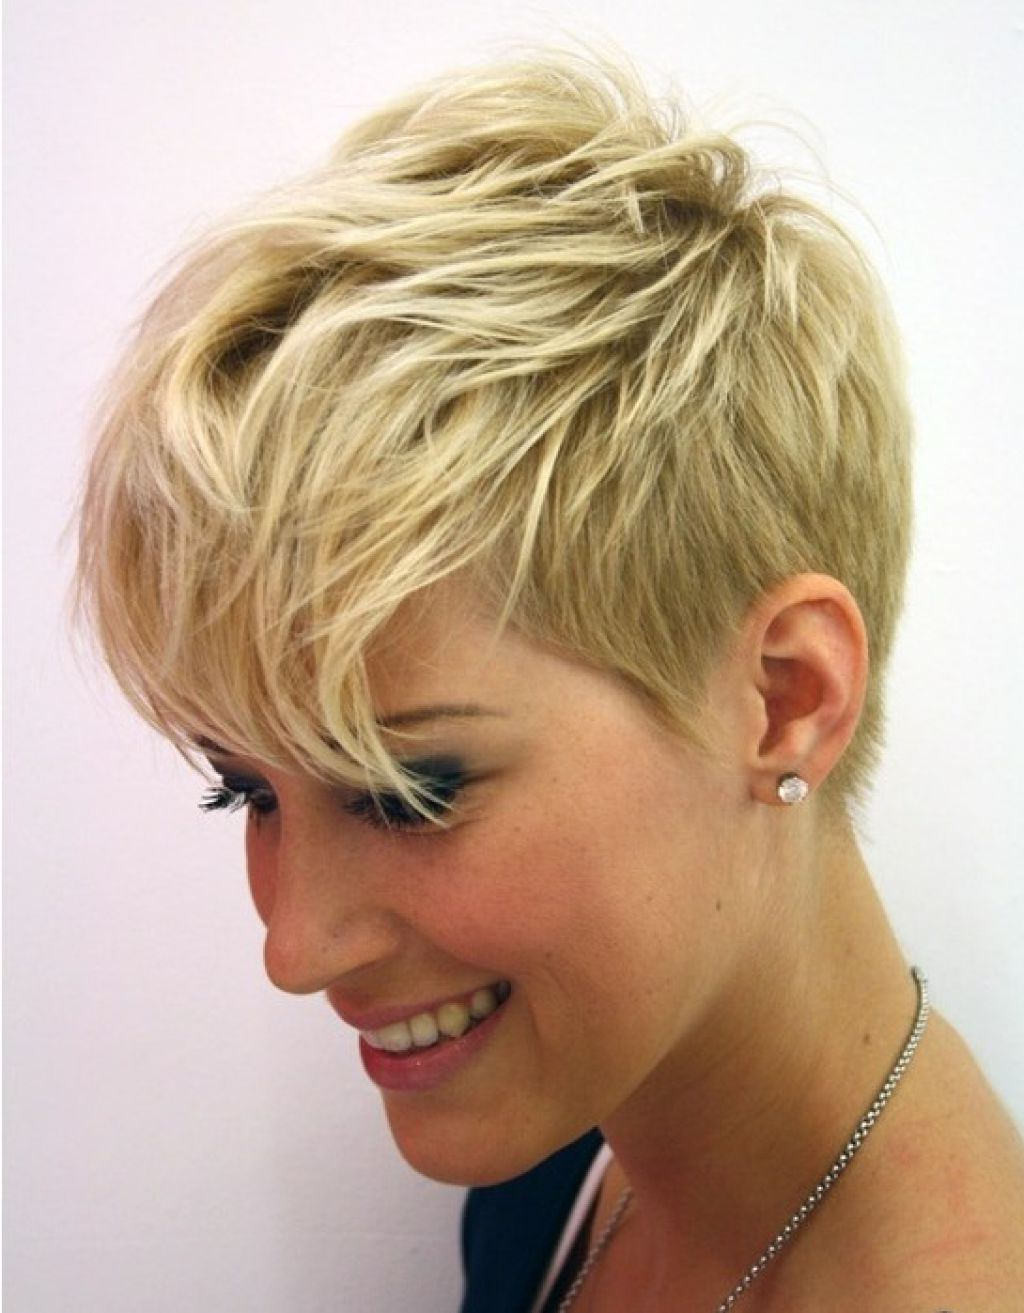 Layered Pixie With Edgy Fringe Short Hairstyles For Fine Hair Regarding Layered Pixie Hairstyles With An Edgy Fringe (View 18 of 20)